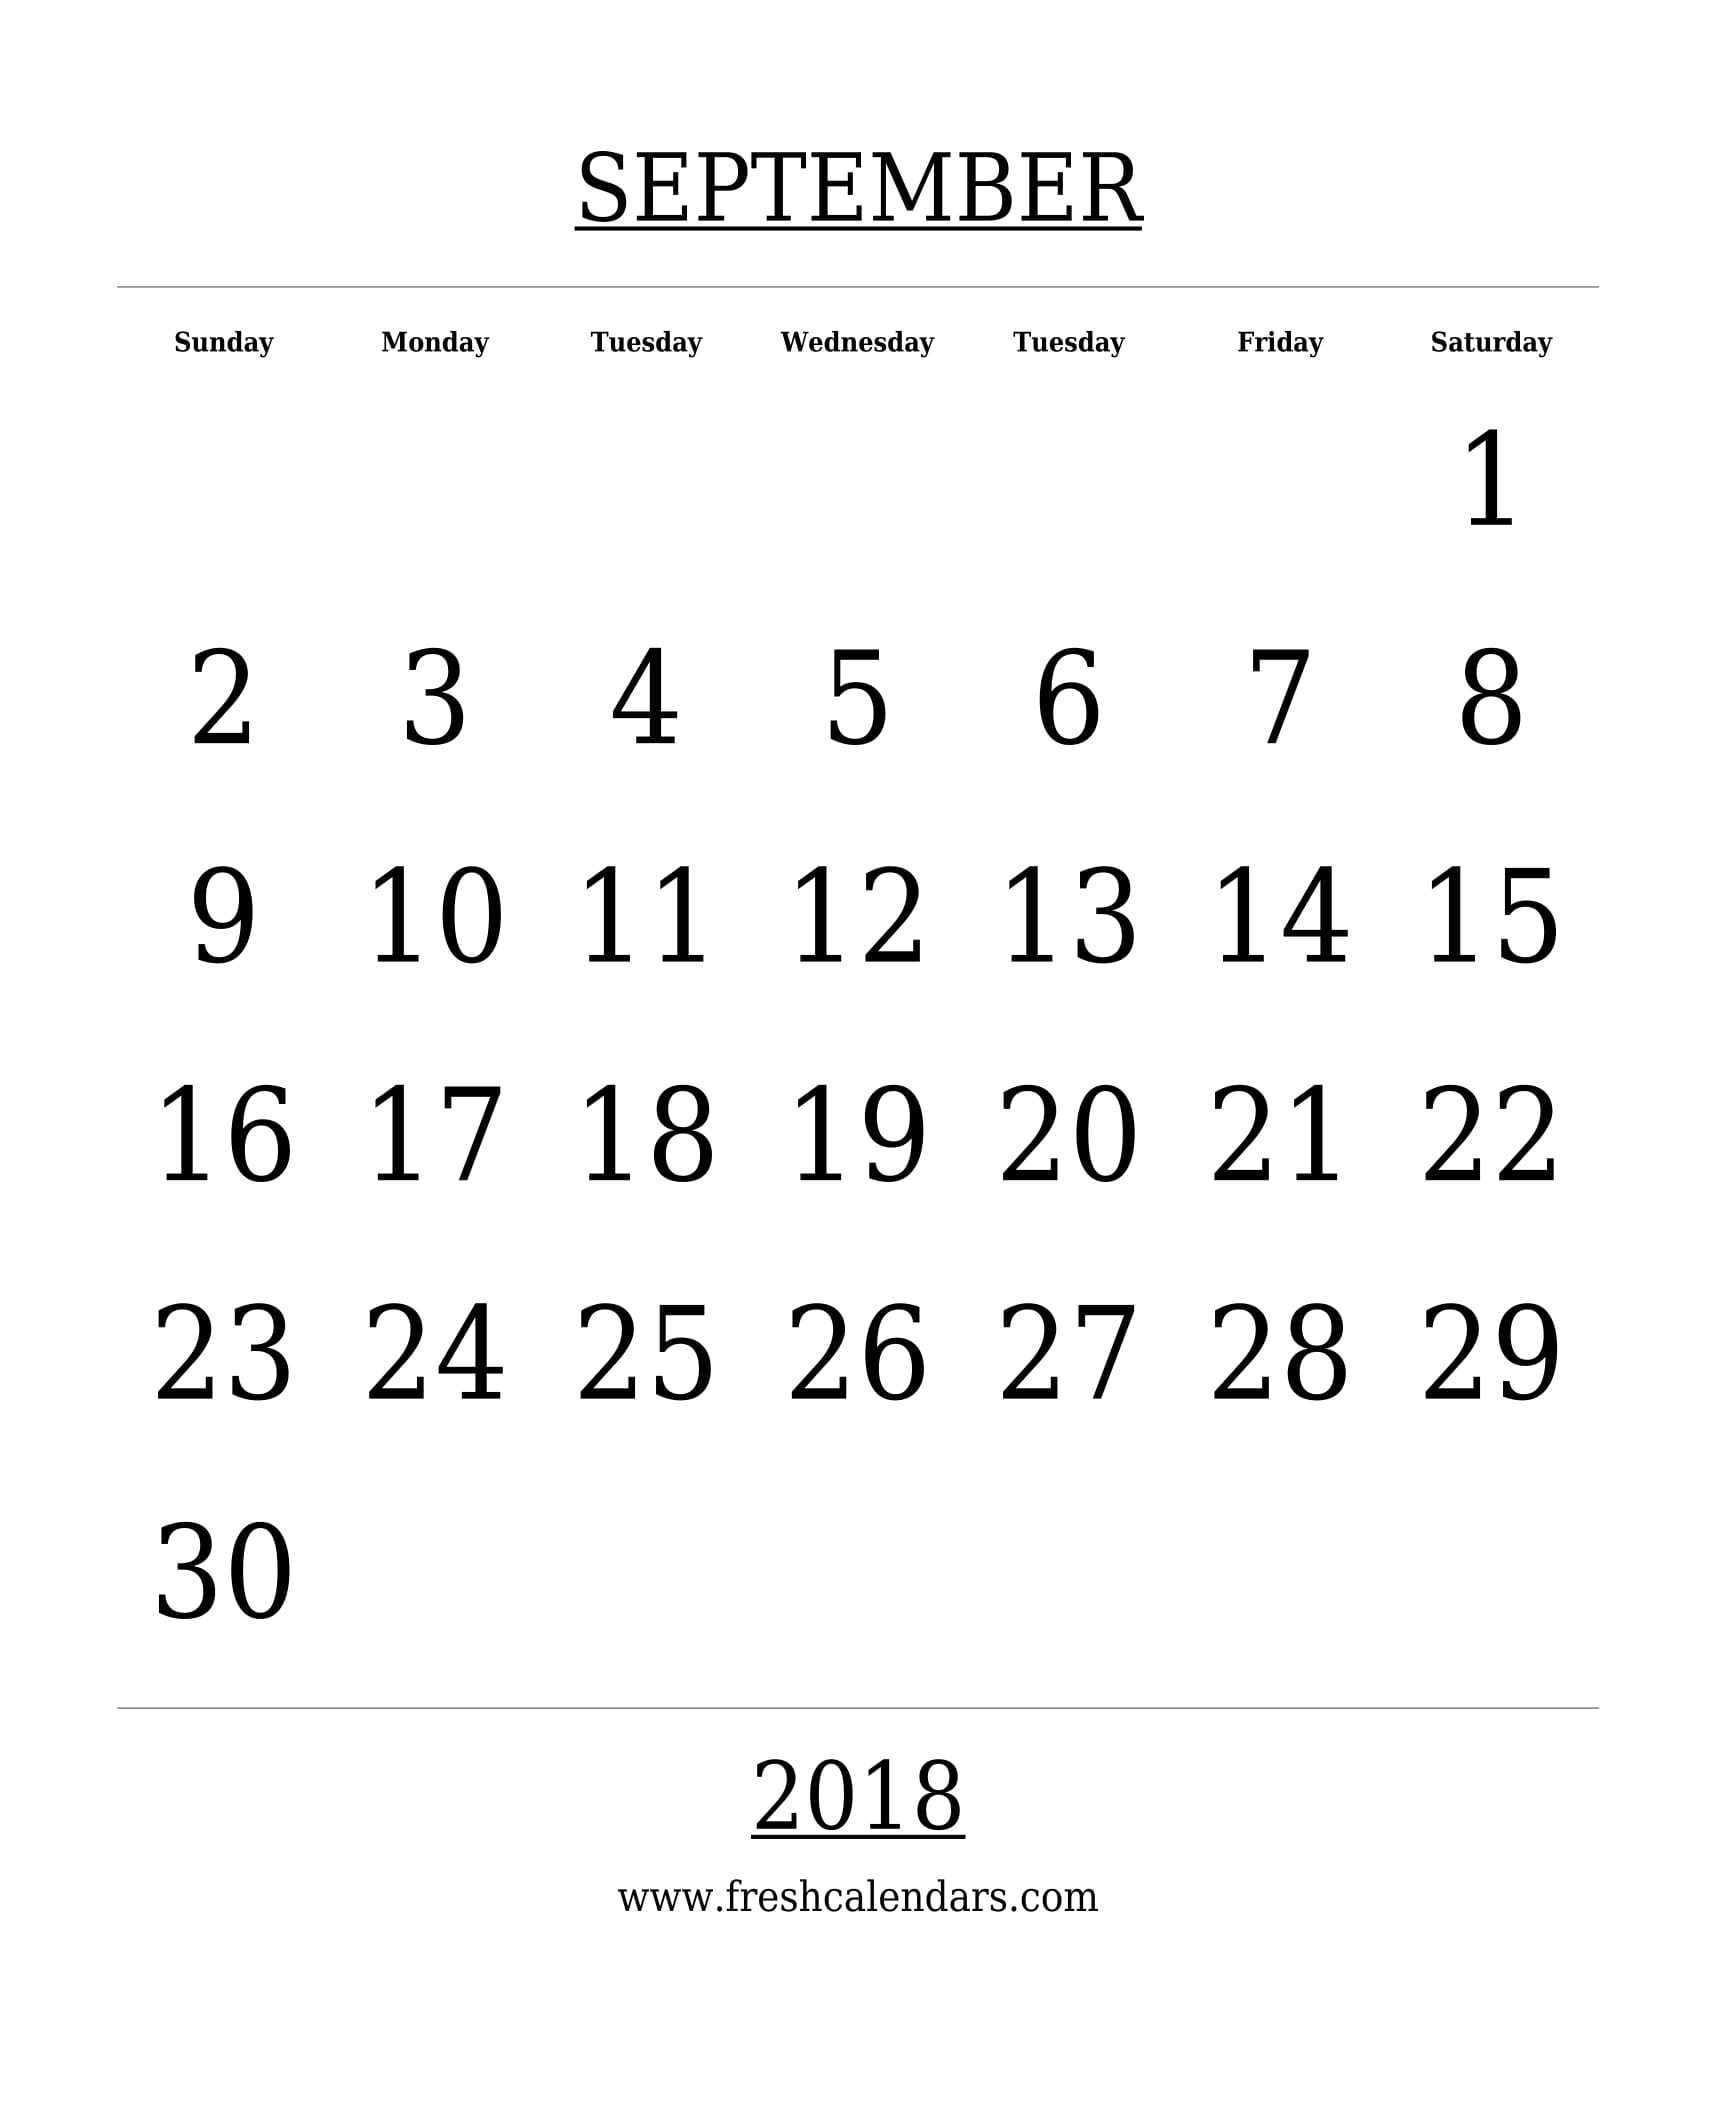 photo relating to Free Printable Calendar Numbers named September 2018 Calendar Printable - Fresh new Calendars